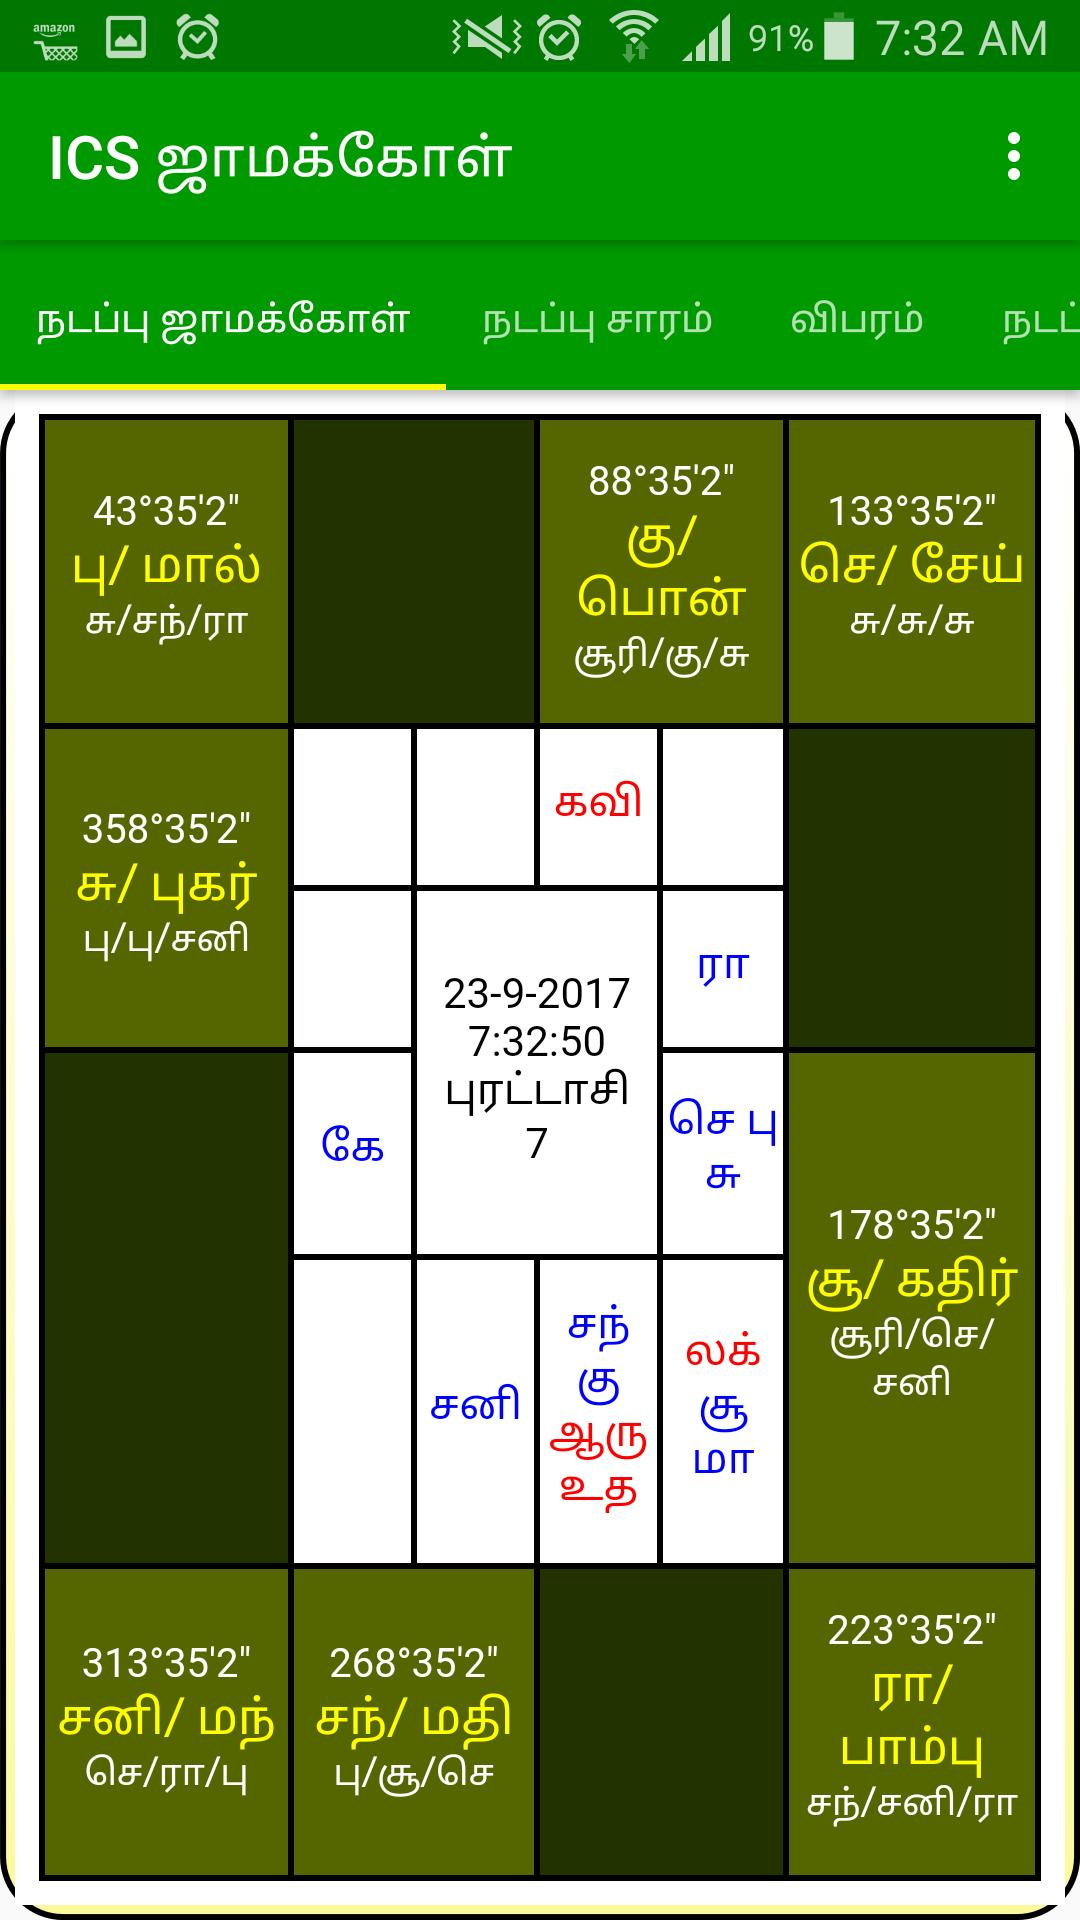 ICS Jamakol & KP System Tamil Astrology for Android - APK